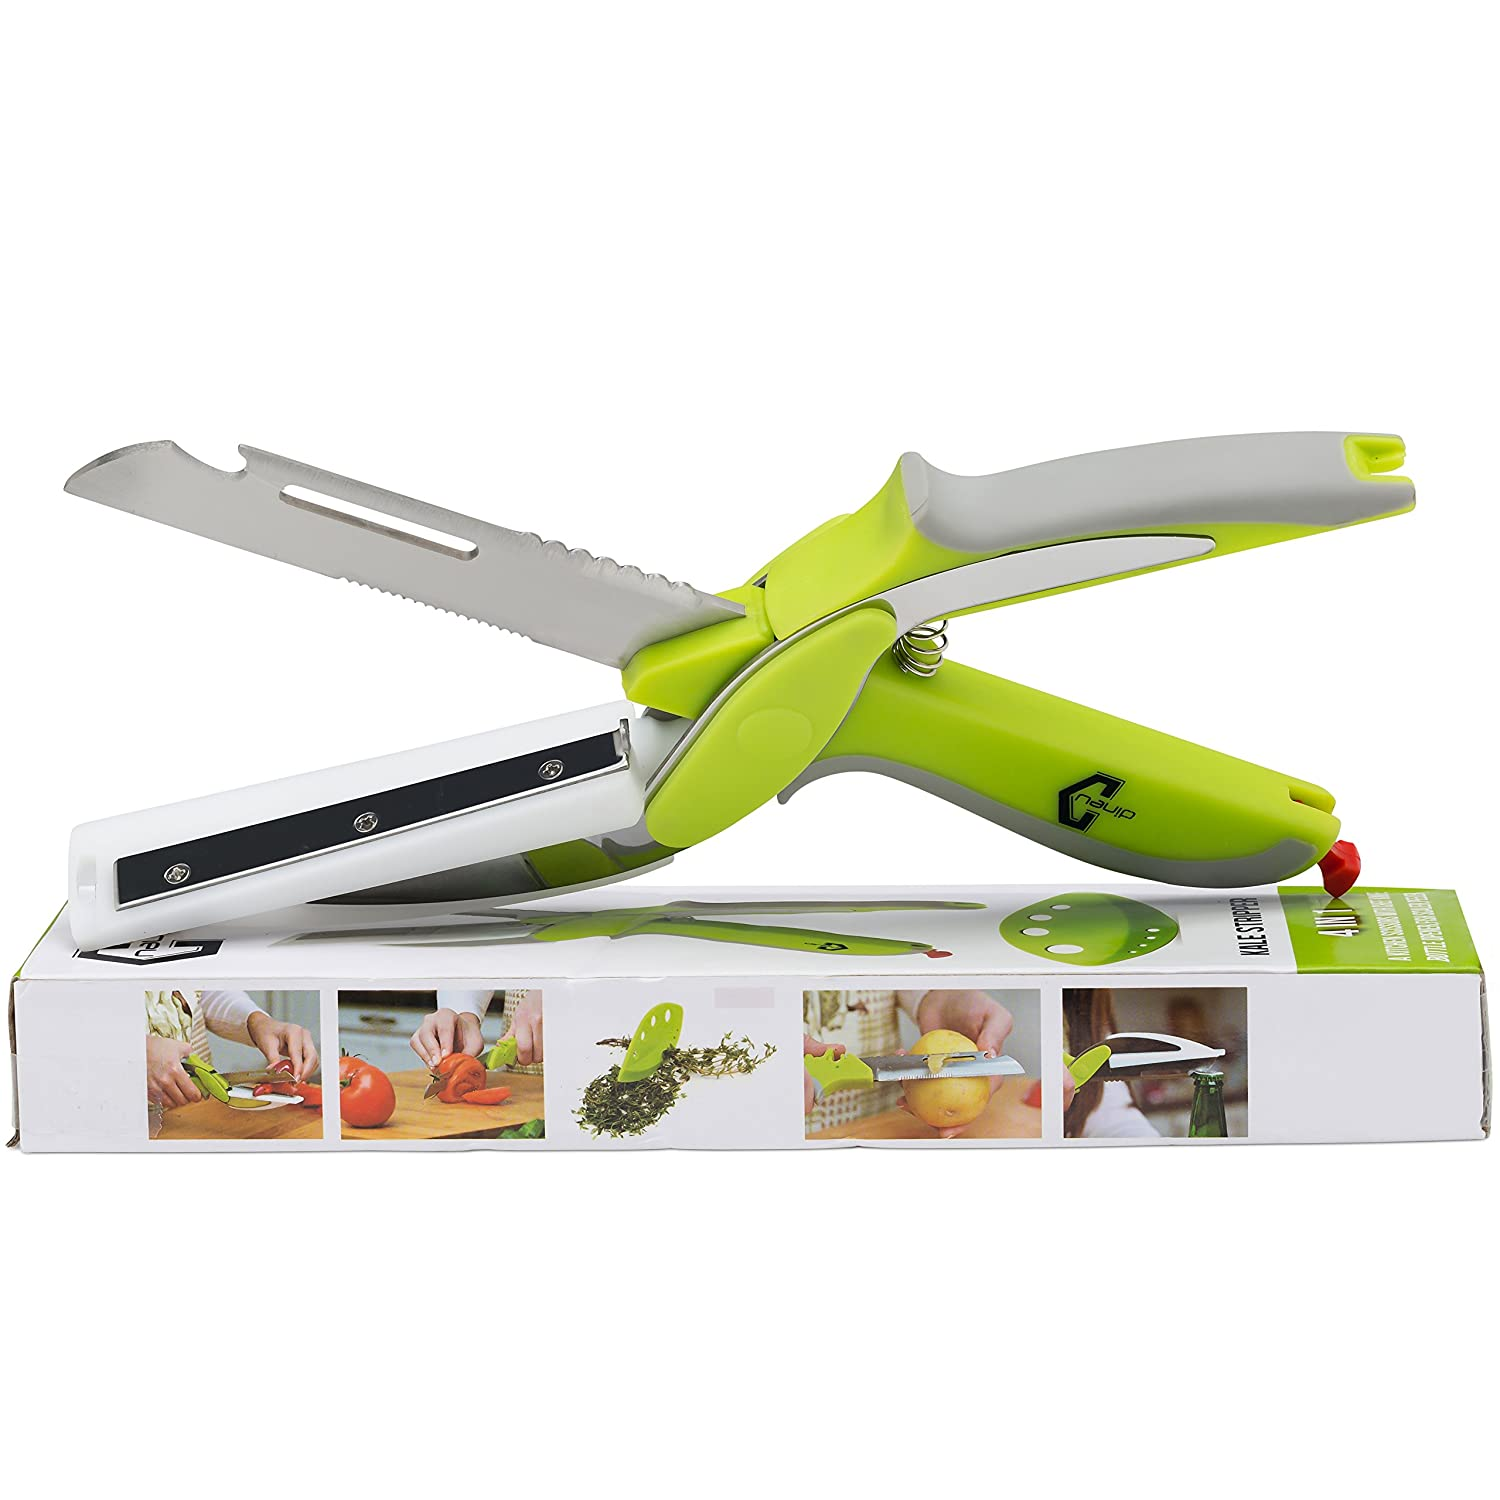 6 In 1 DineU Multipurpose Clever Food Cutter-Slicer, Cutter, Dicer for Vegetables, Fruits Meat and Cheese Kitchen Knife Combines A Scissor And Cutting Board Fish Scaler - PLUS Free Bonus Kale Stripper